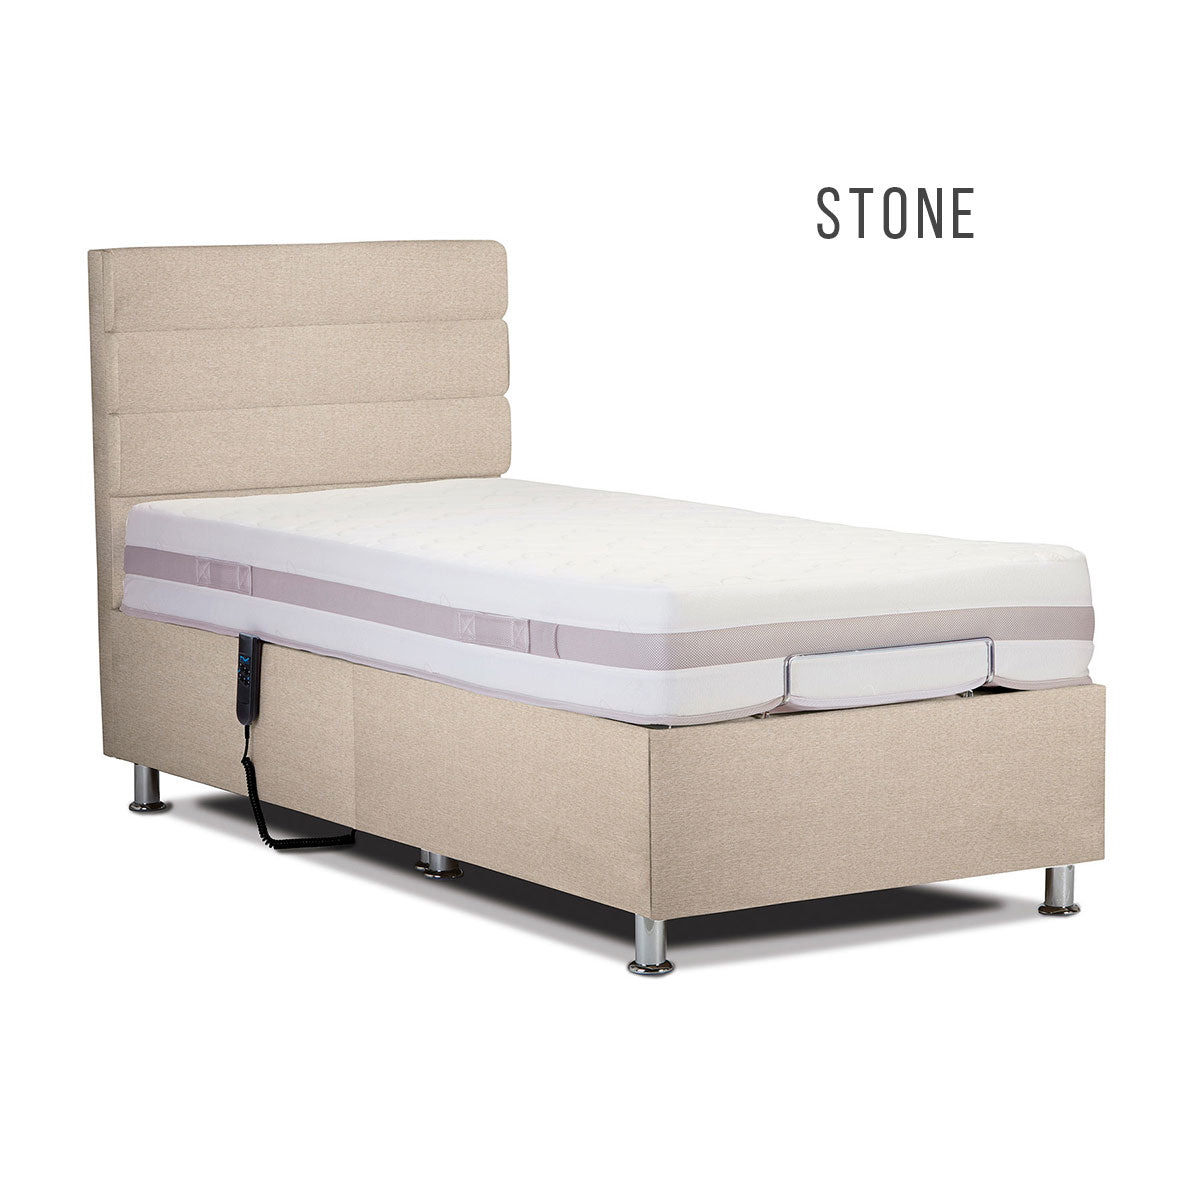 Sherborne 5' Hampton Head Adjustable Bed